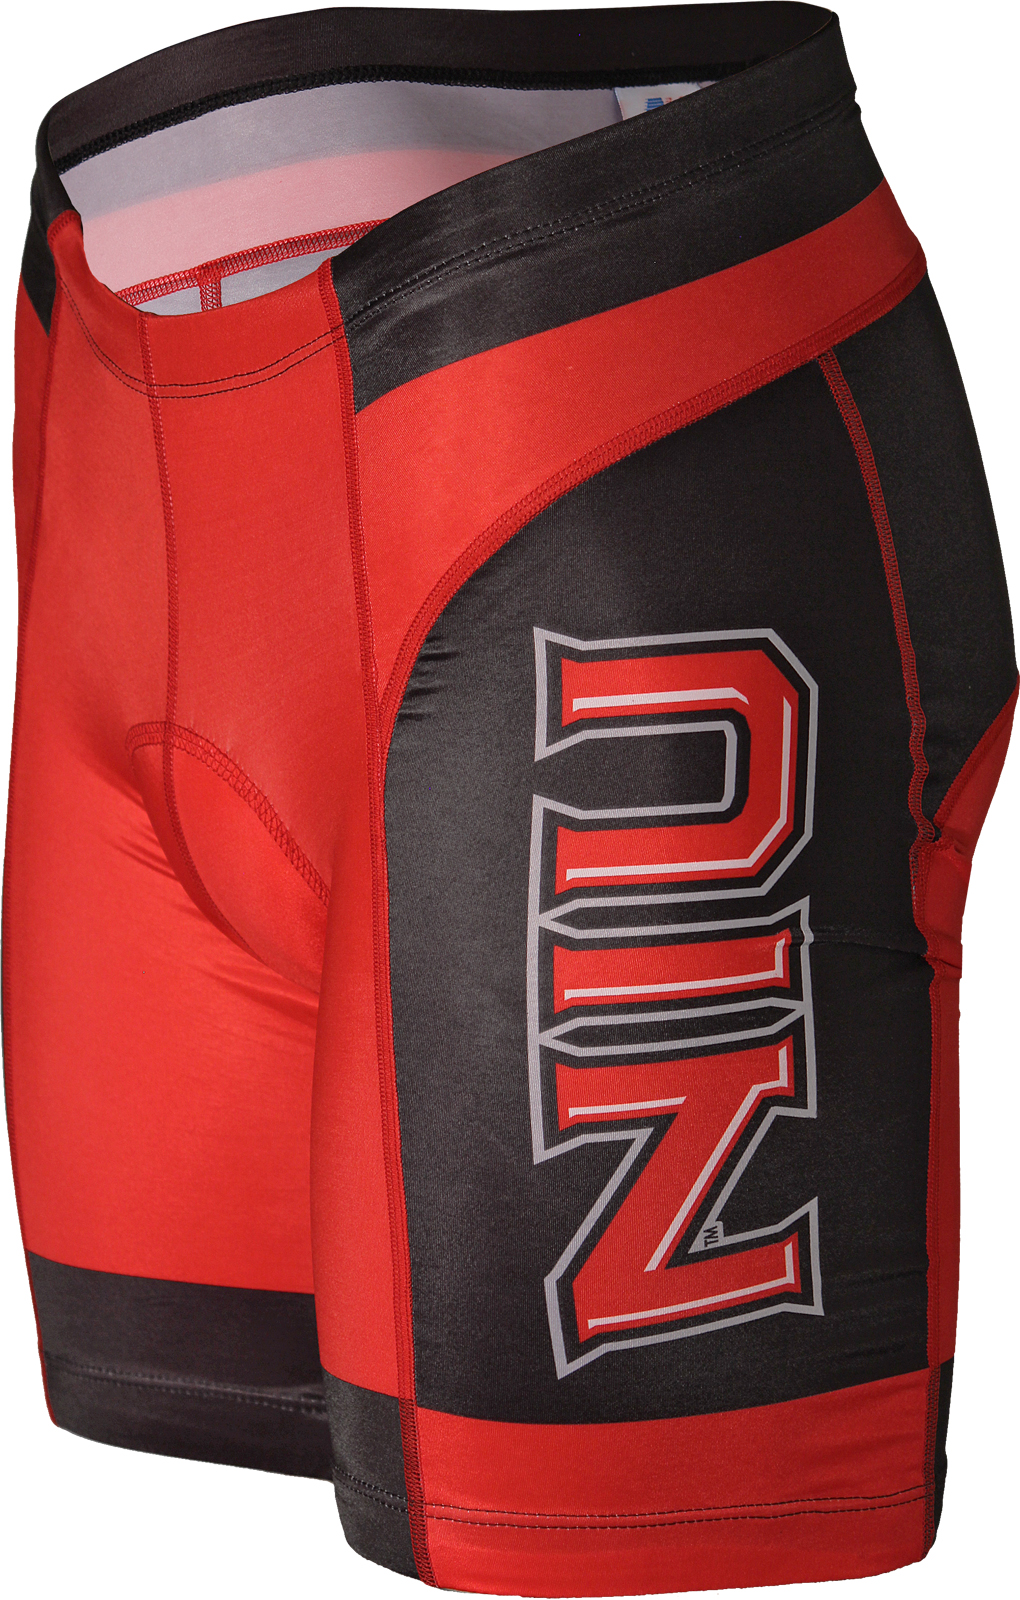 Northern Illinois University Cycling Shorts Medium